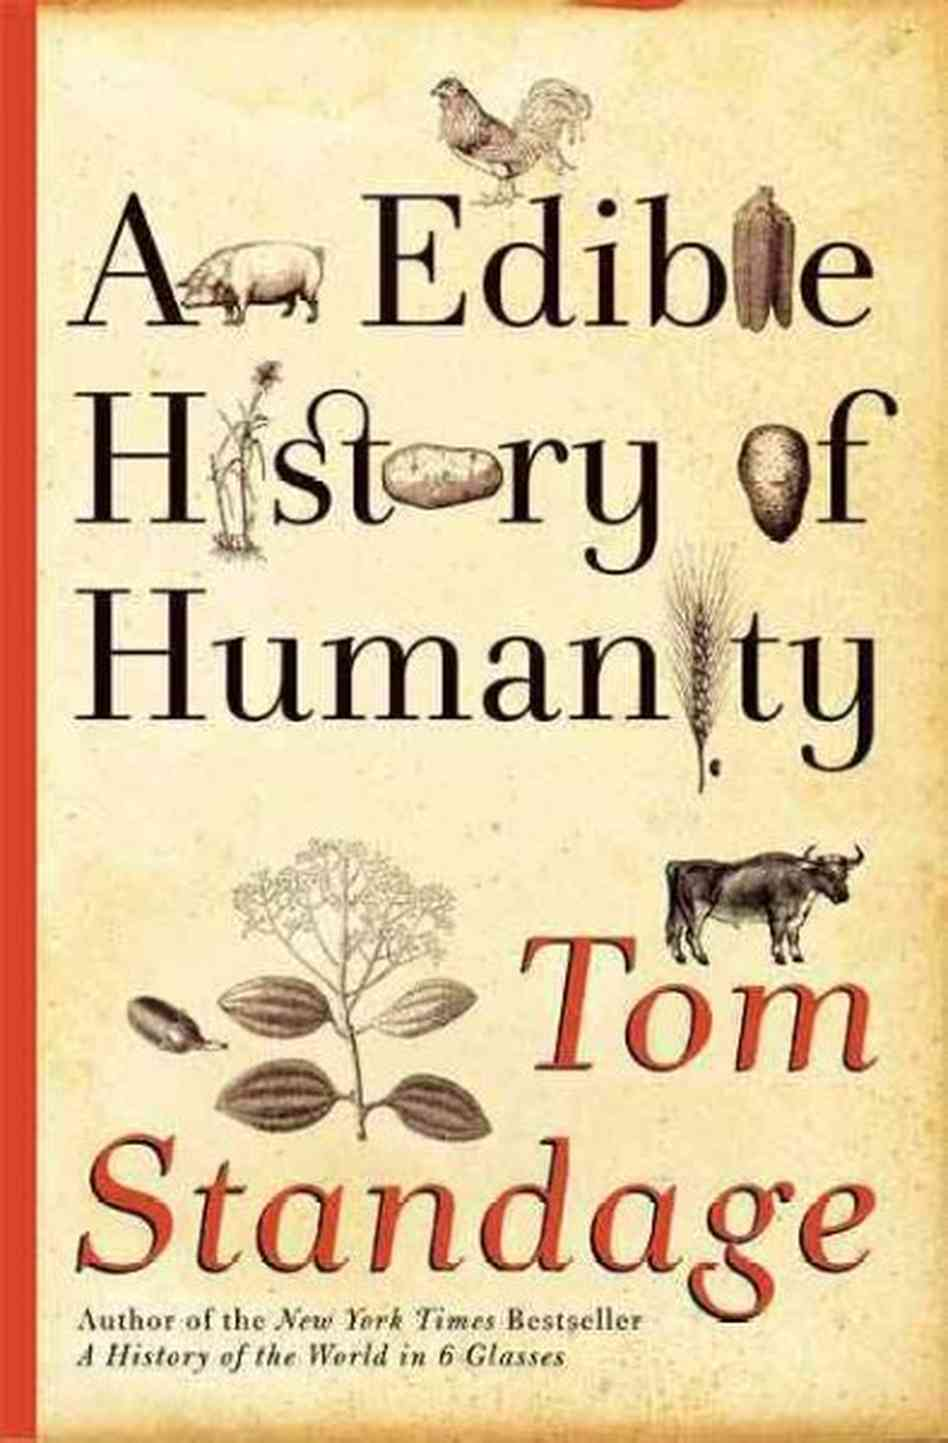 Book Review  An Edible History Of Humanity By Tom Standage  Book Review  An Edible History Of Humanity By Tom Standage Contributor   Publius Online